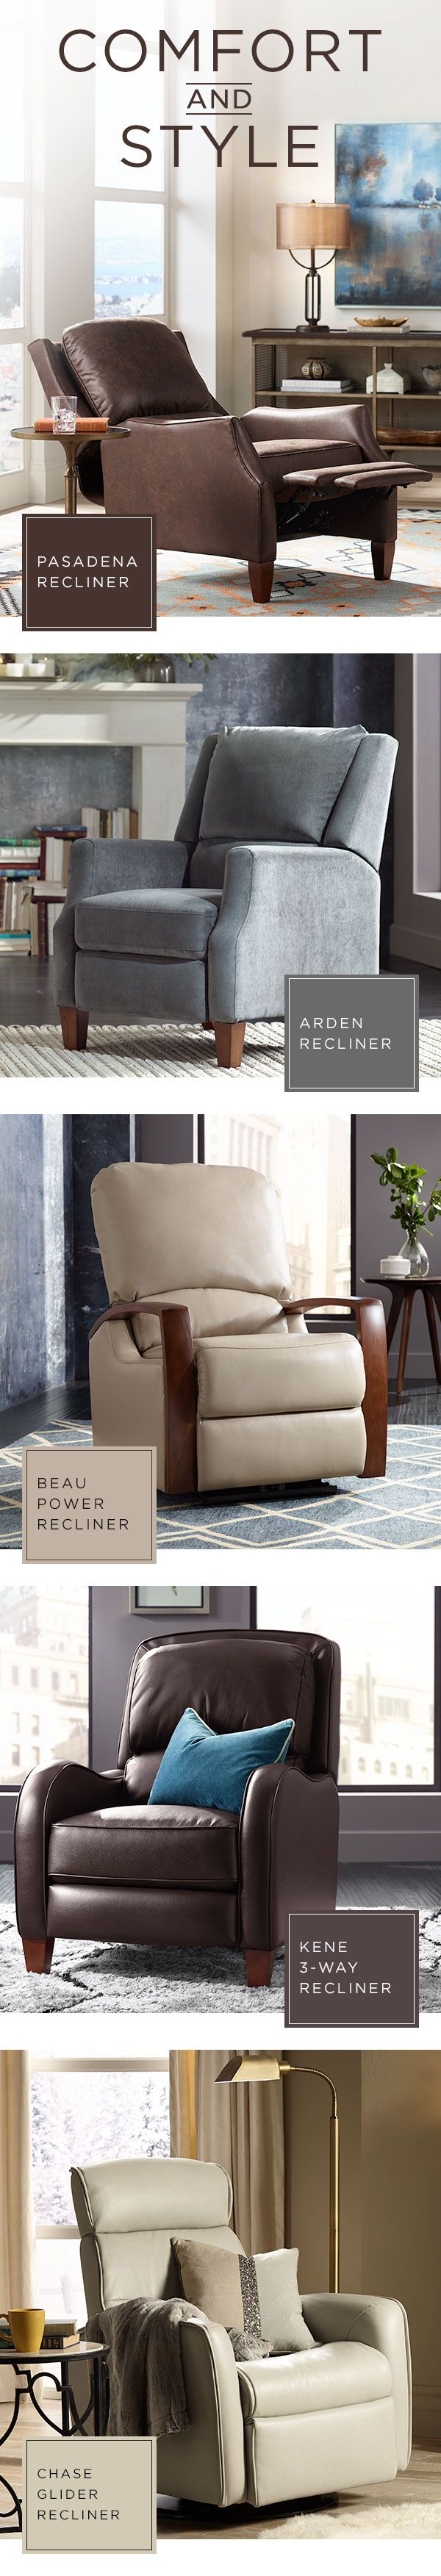 Furniture swivel and tub chairs dori fabric swivel cuddle chair - Relax In Comfort And Style With A Recliner Chair To Match Your Home Decor